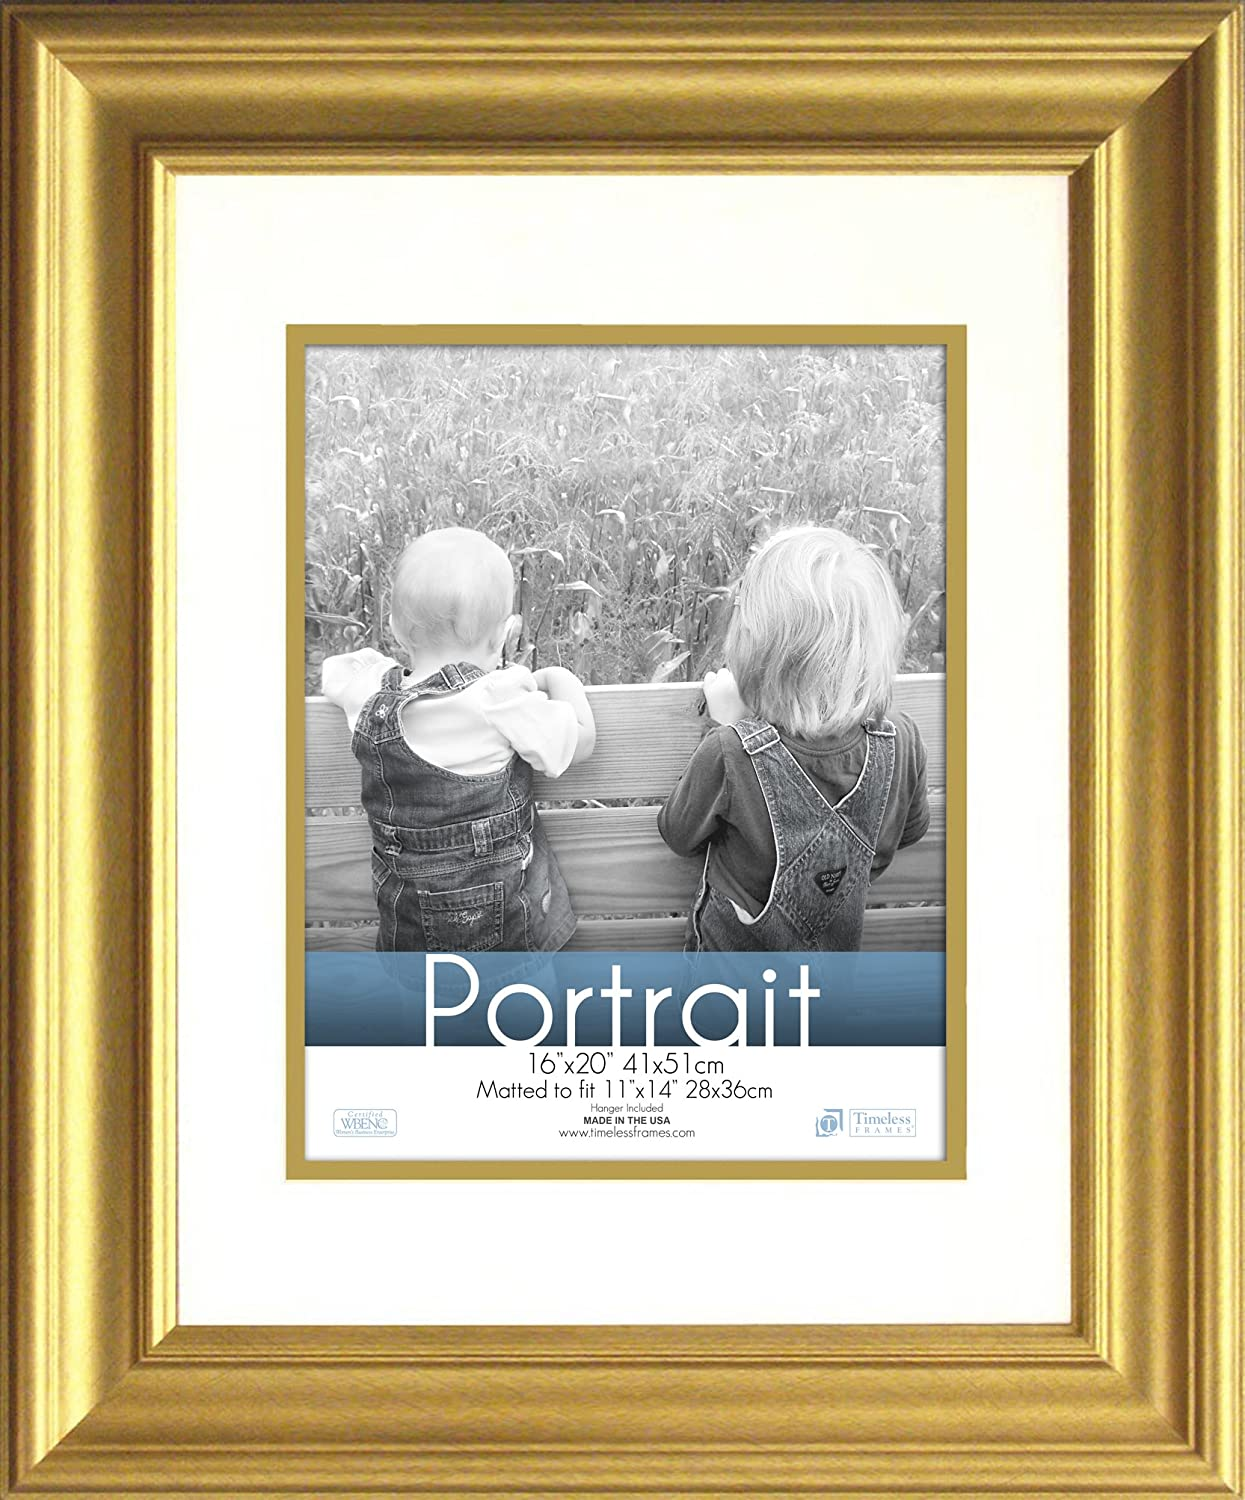 Amazon timeless frames 16x20 inch fits 11x14 inch photo amazon timeless frames 16x20 inch fits 11x14 inch photo lauren portrait wall frame gold single frames jeuxipadfo Gallery